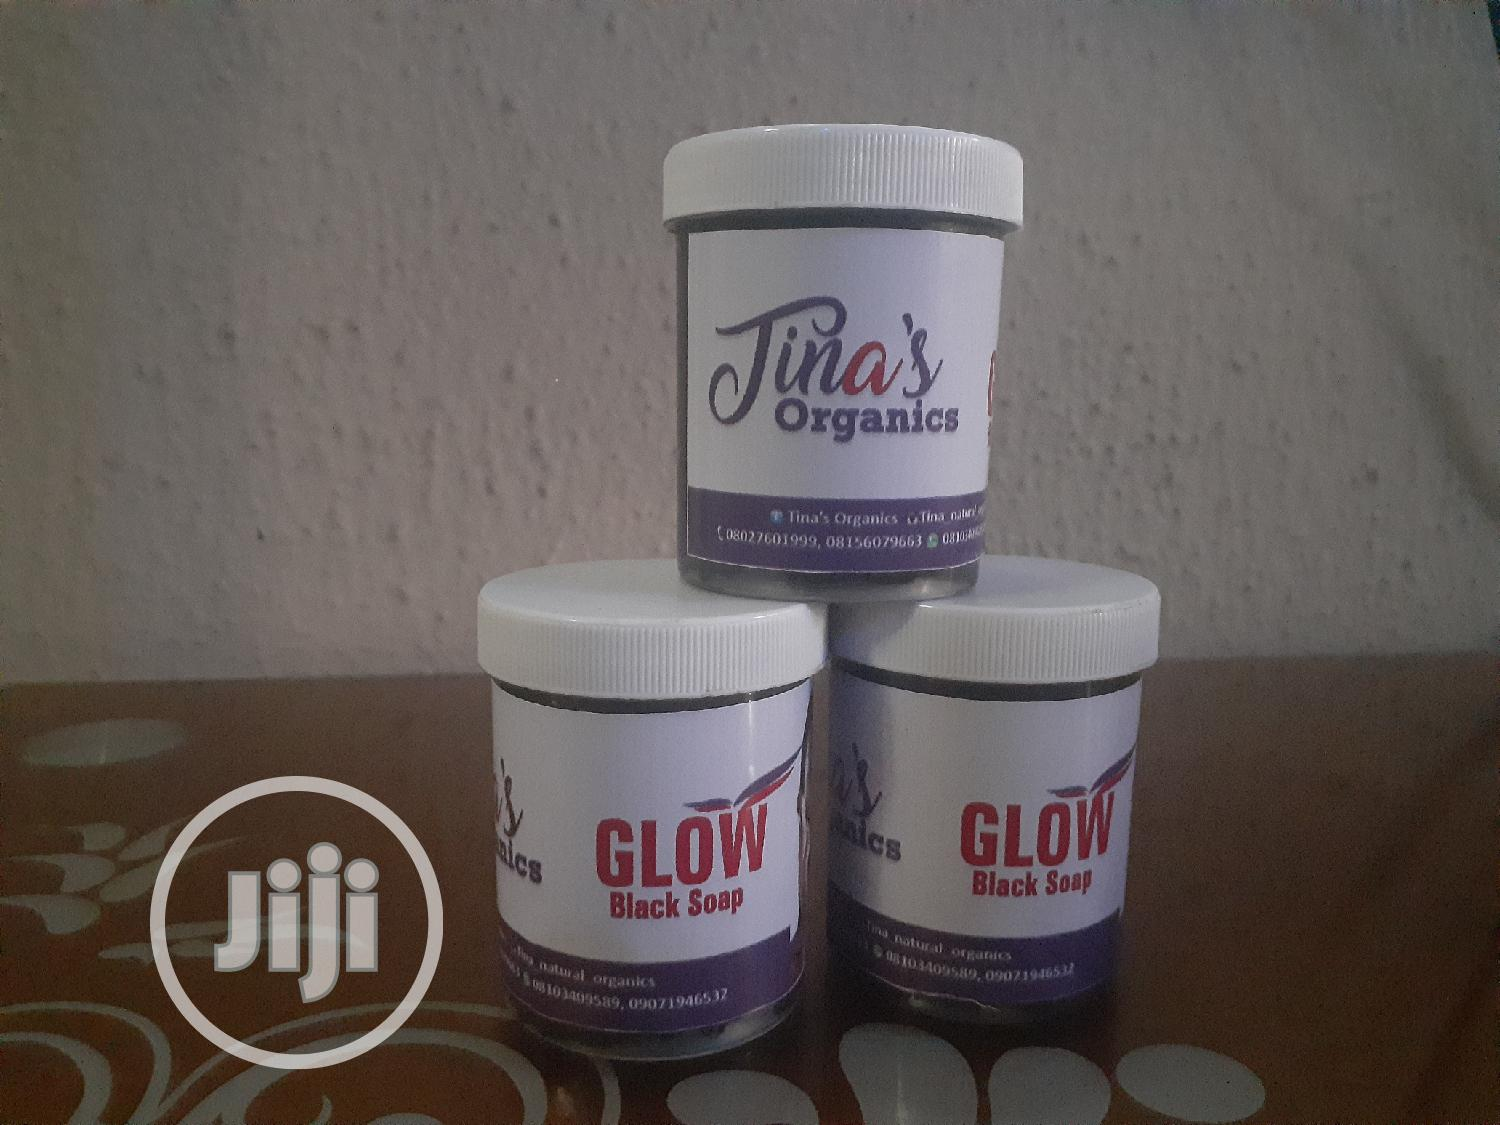 Glow Black Soap And Glow Oil